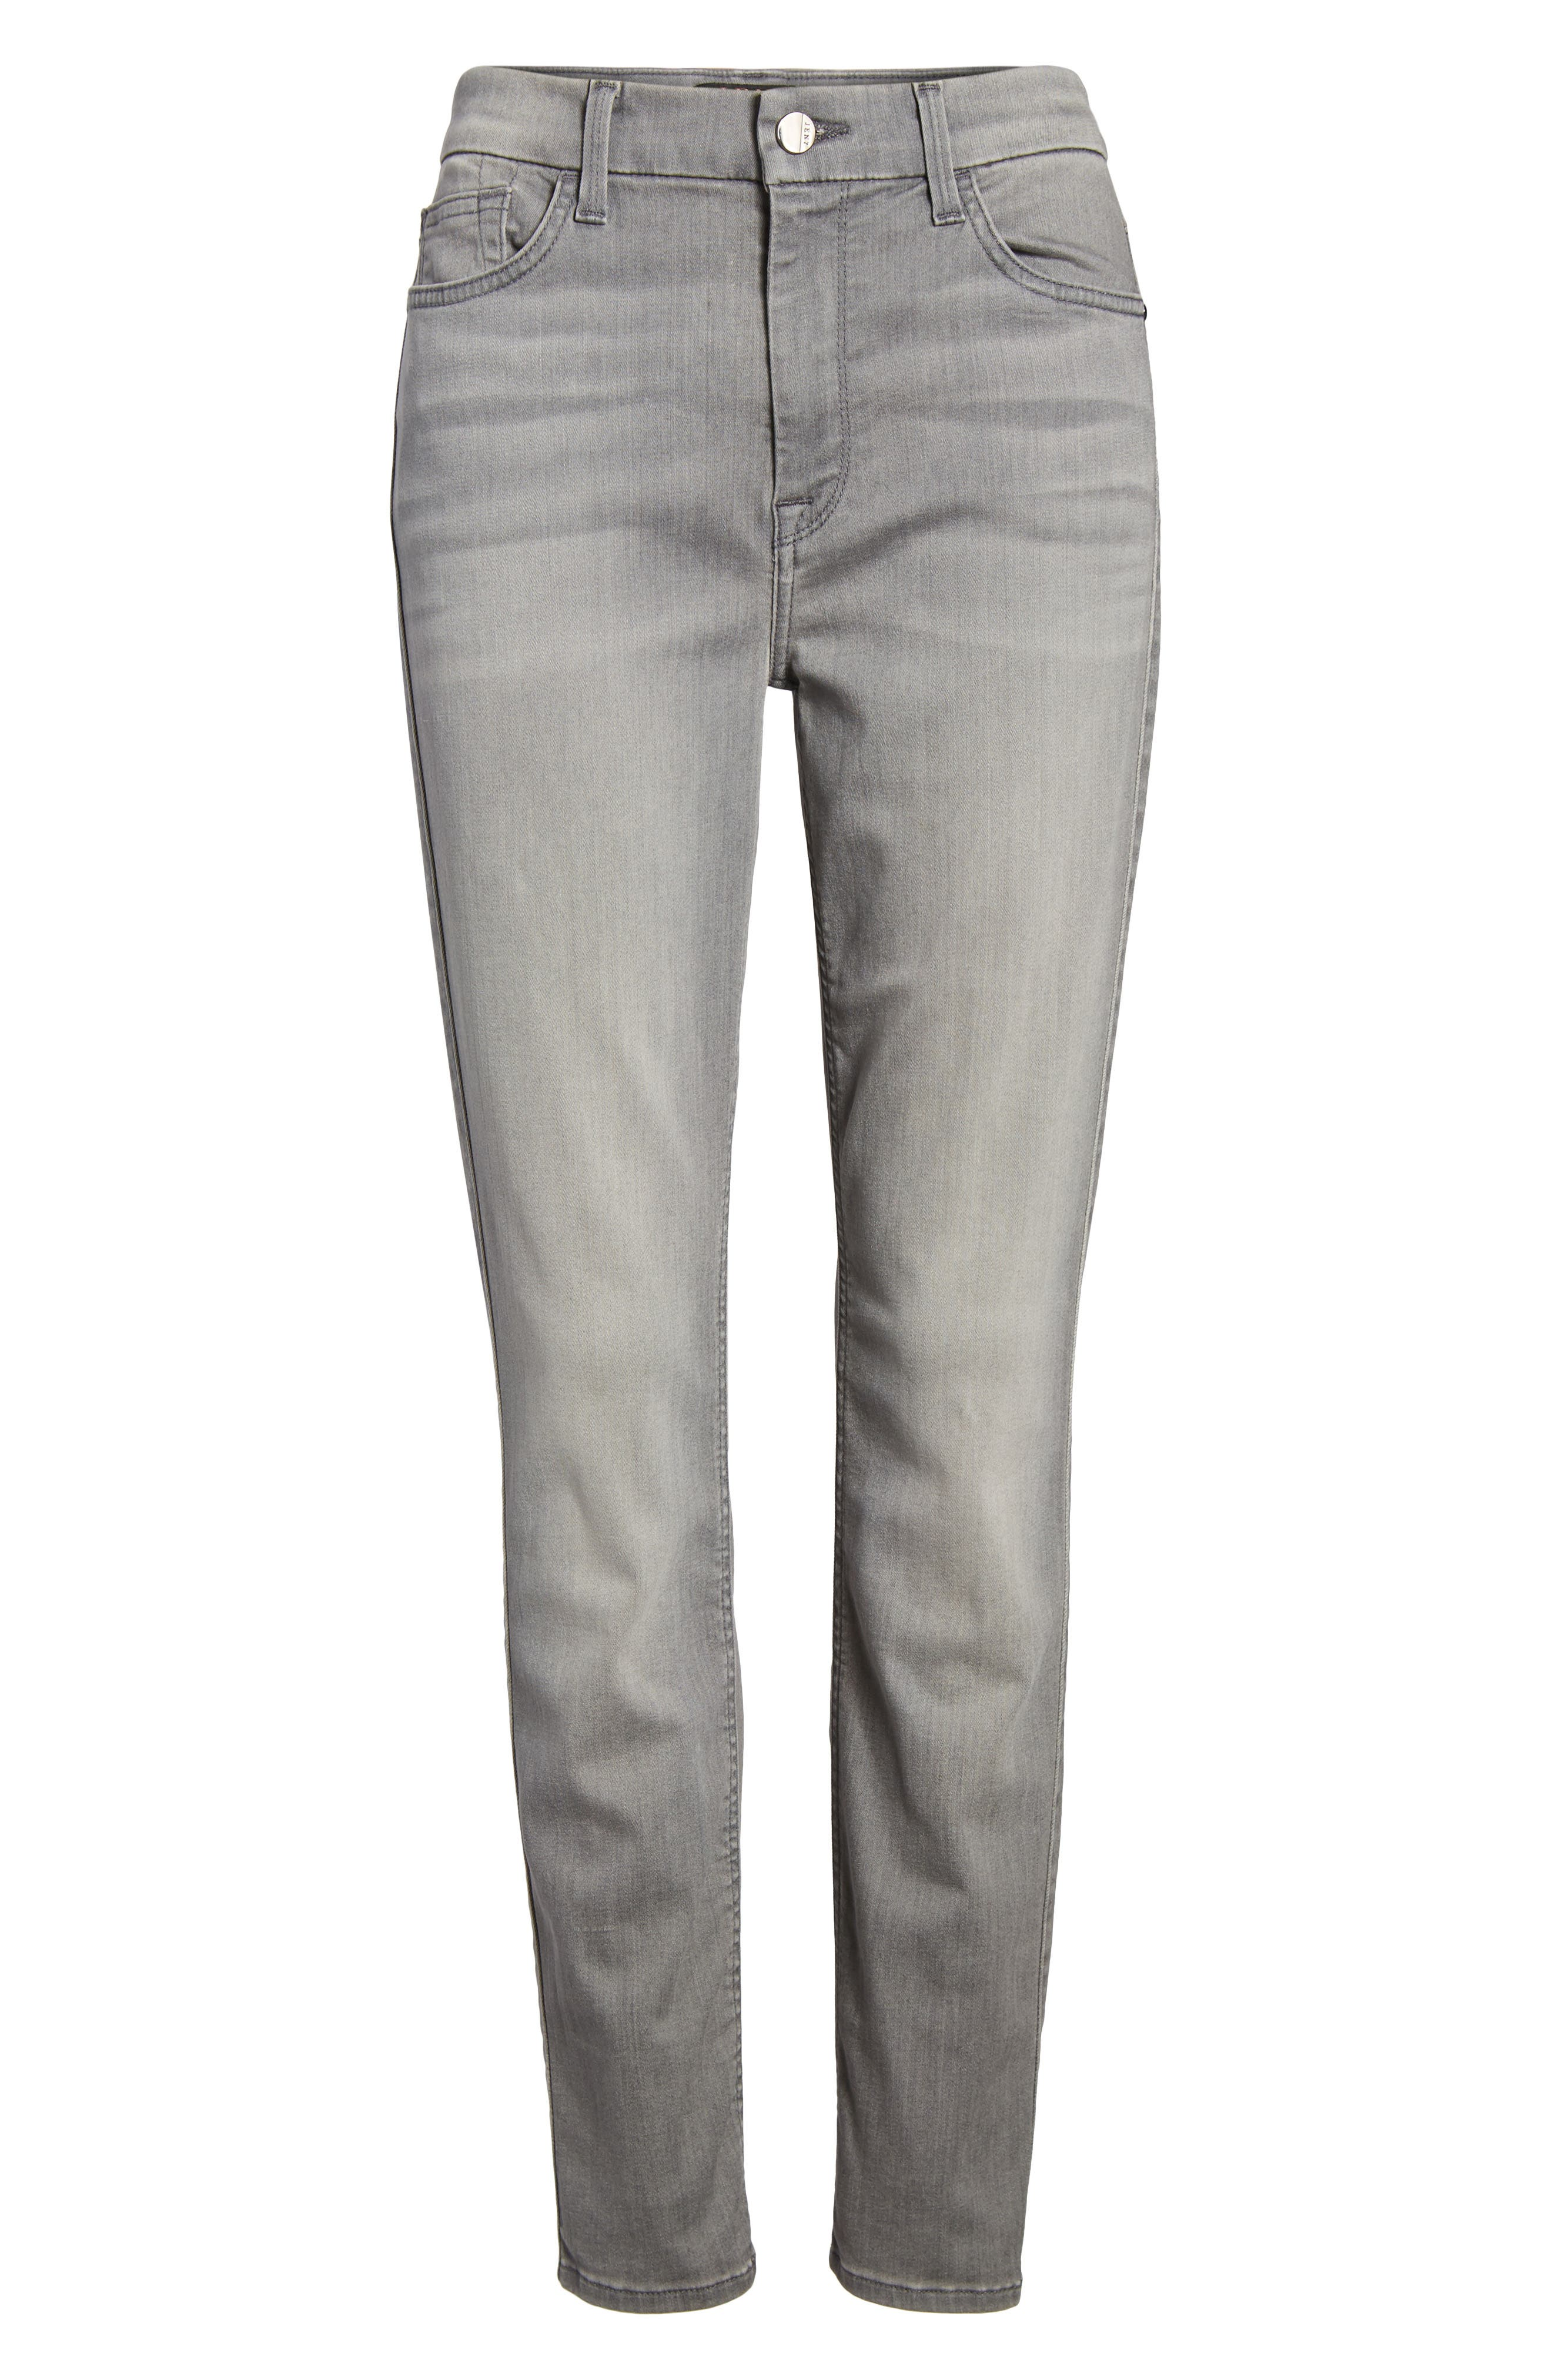 Stretch Ankle Skinny Jeans,                             Alternate thumbnail 6, color,                             022